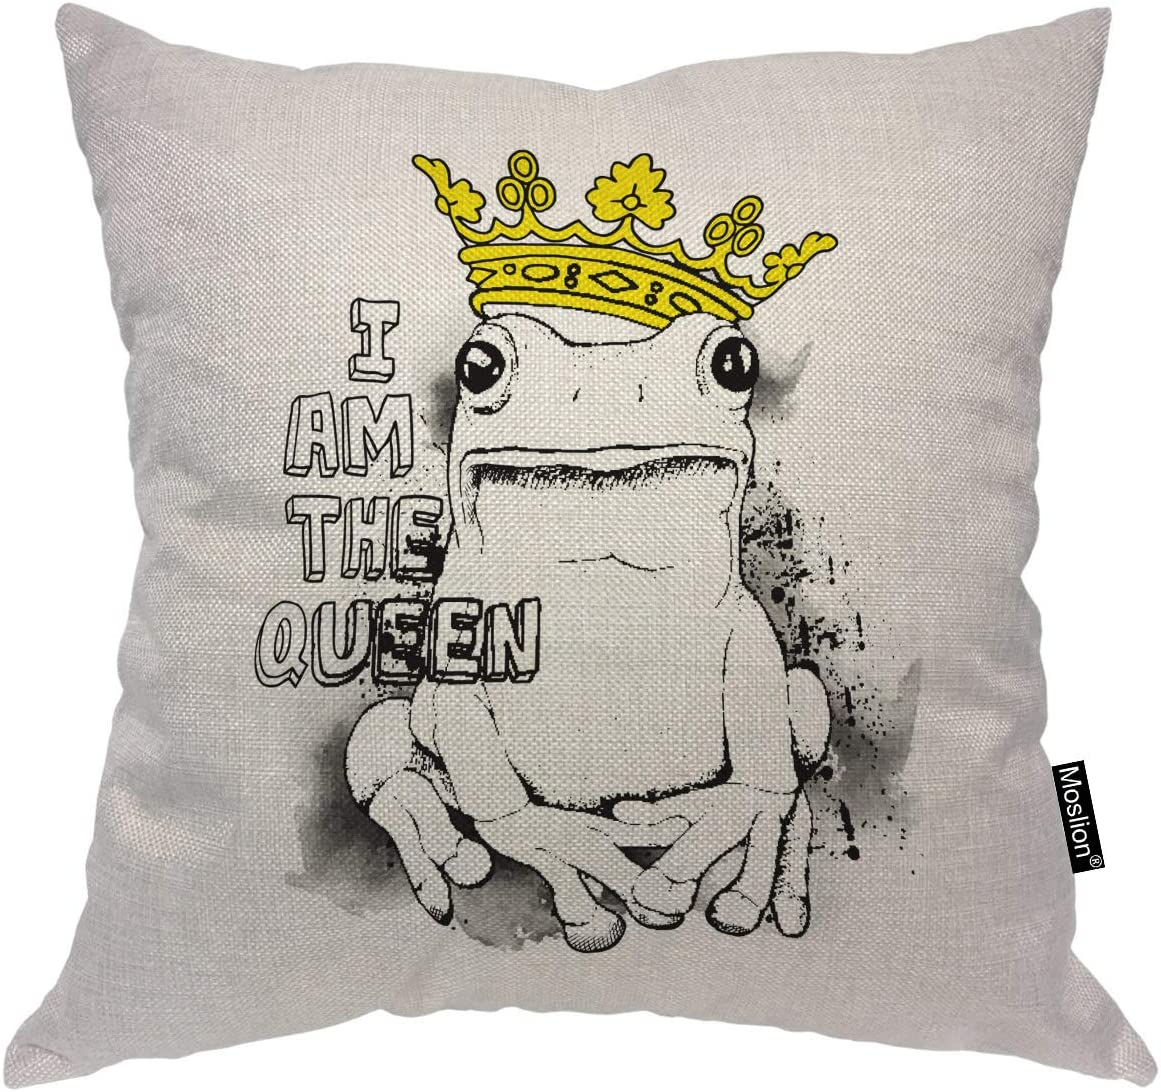 JeremyArtStore 18 x 18 Inches Decorative Cotton Linen Square Throw Pillow Case Cushion Cover Frog Design